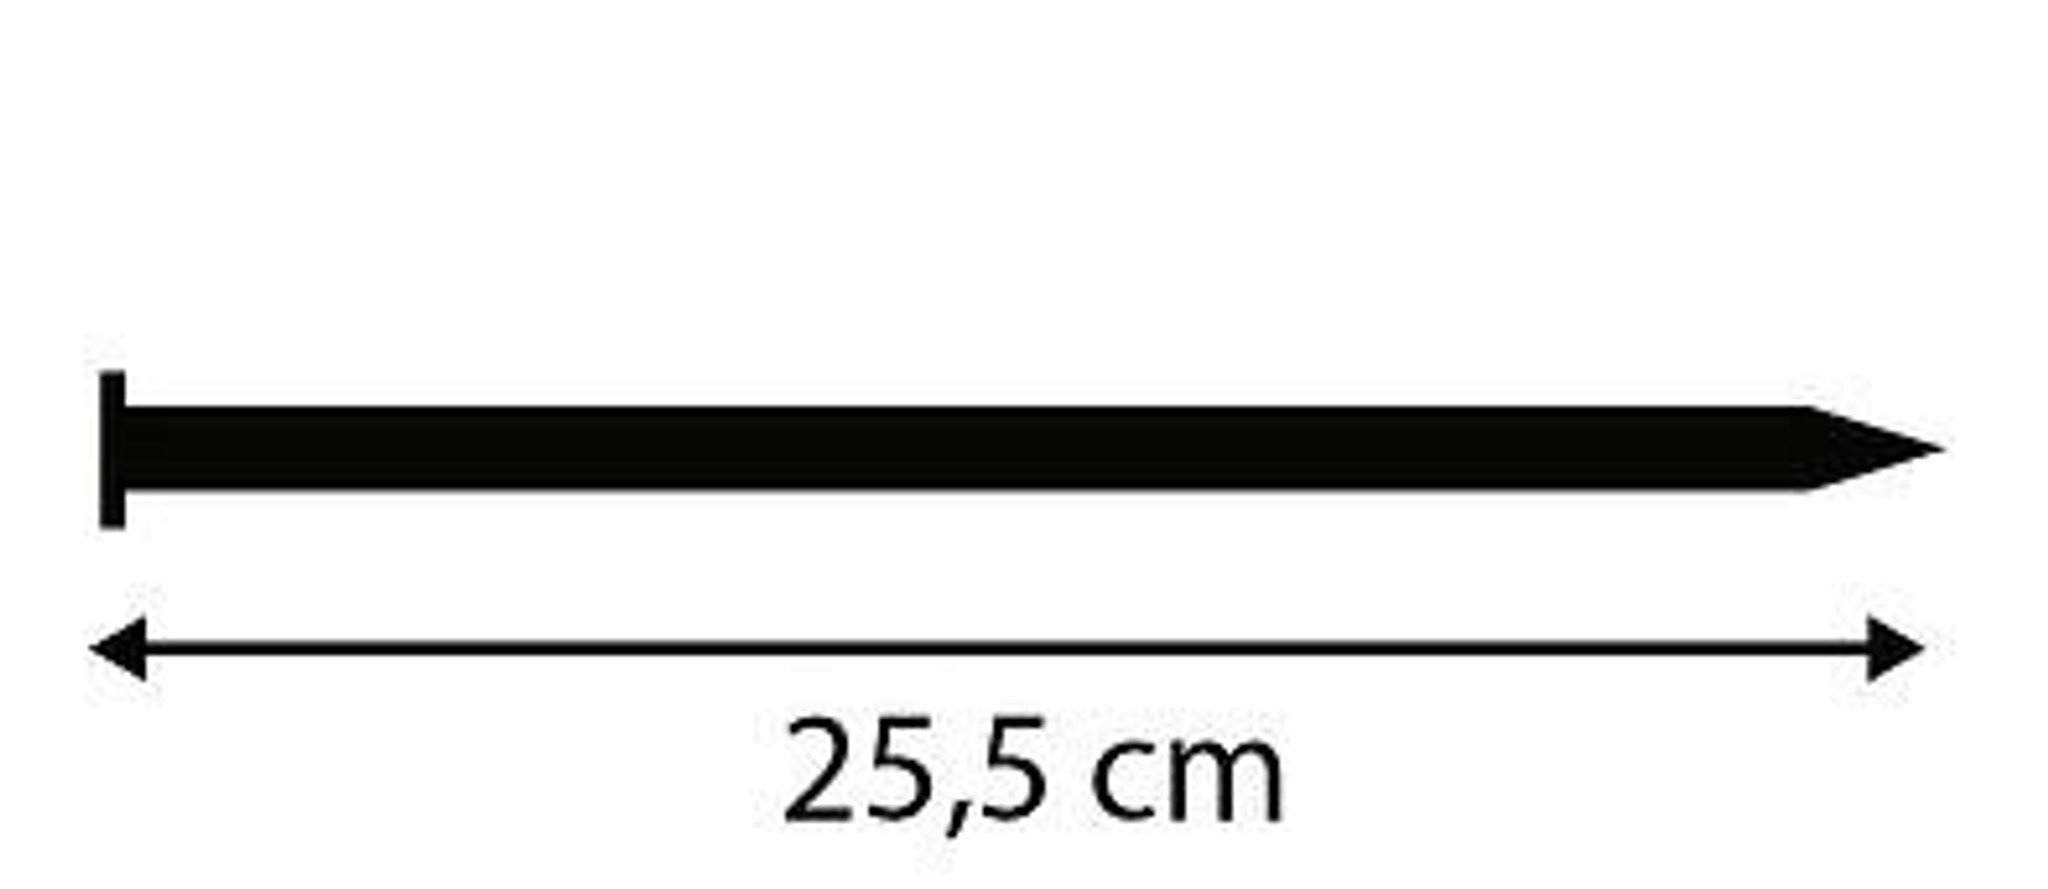 Length of plastic edging nails